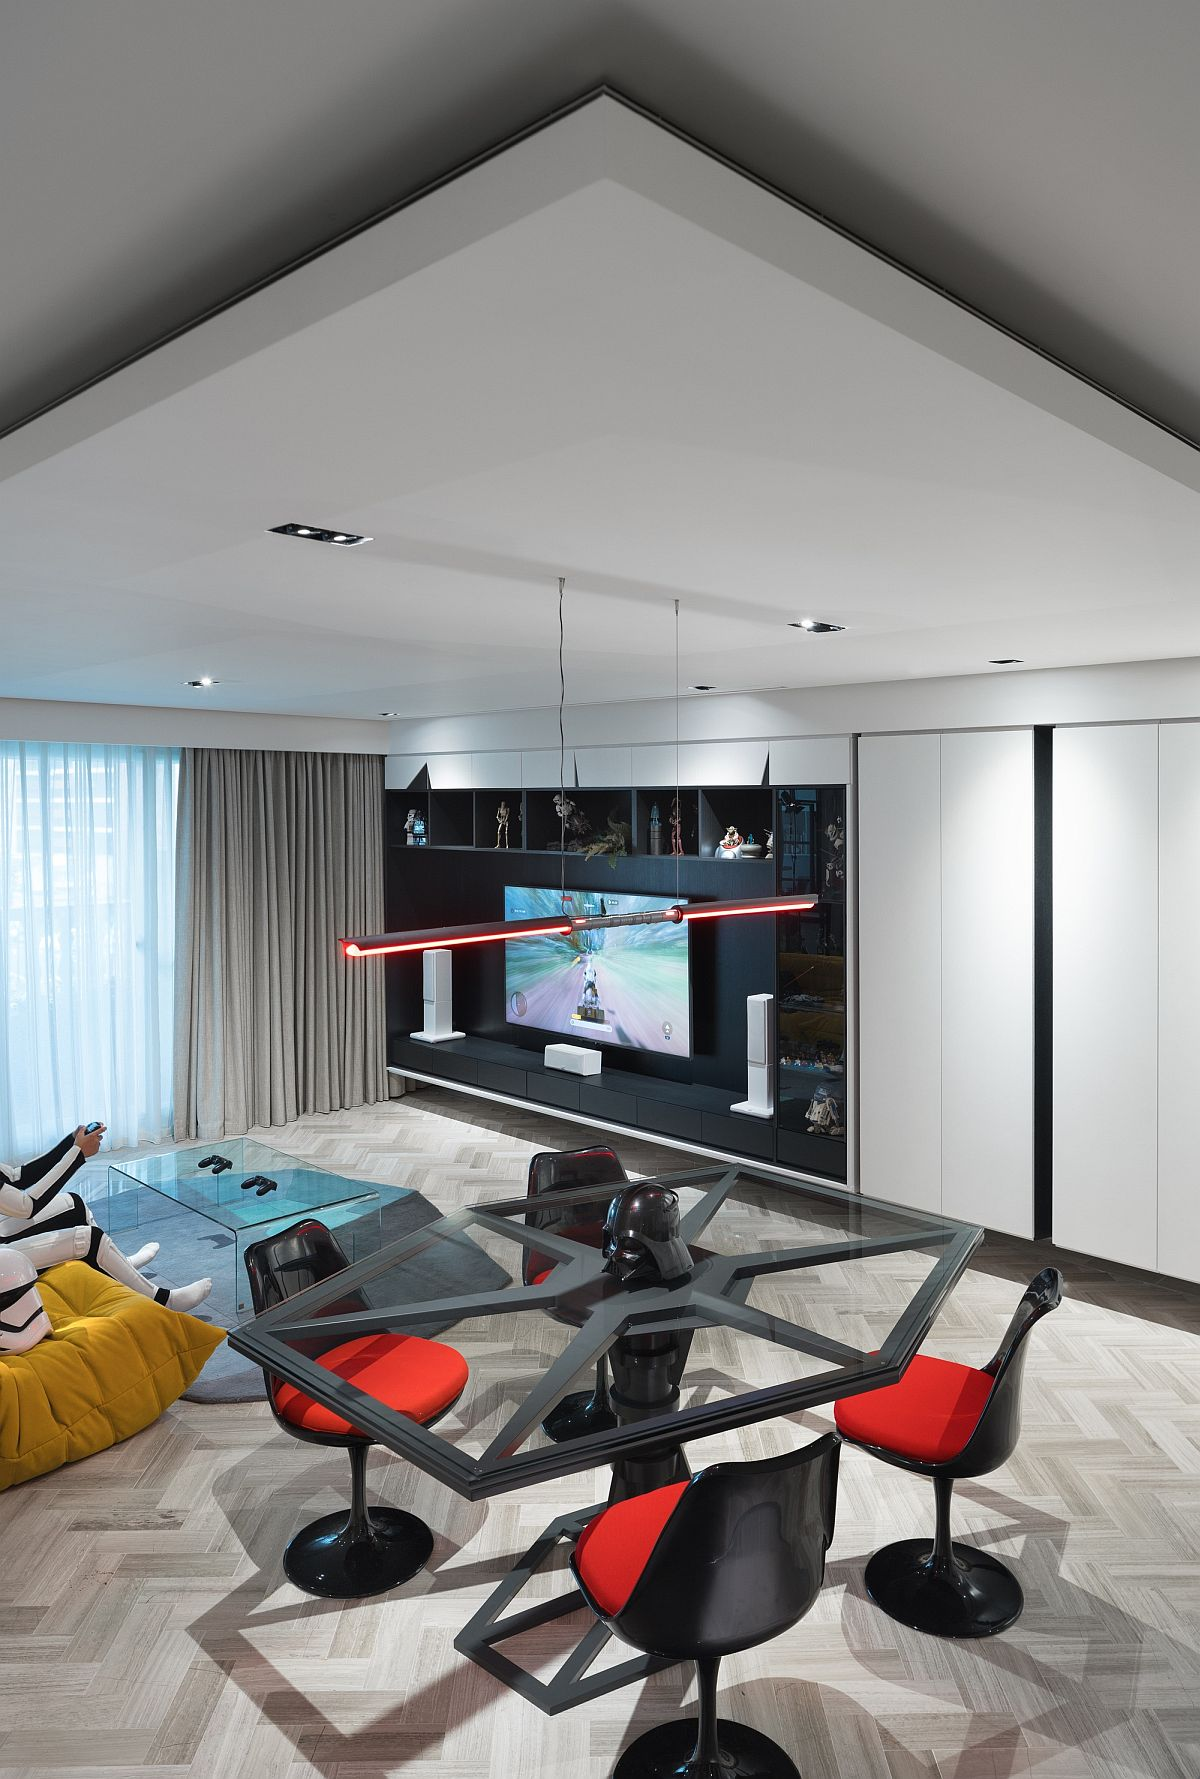 Entertainment zone and living room of the Star Wars home